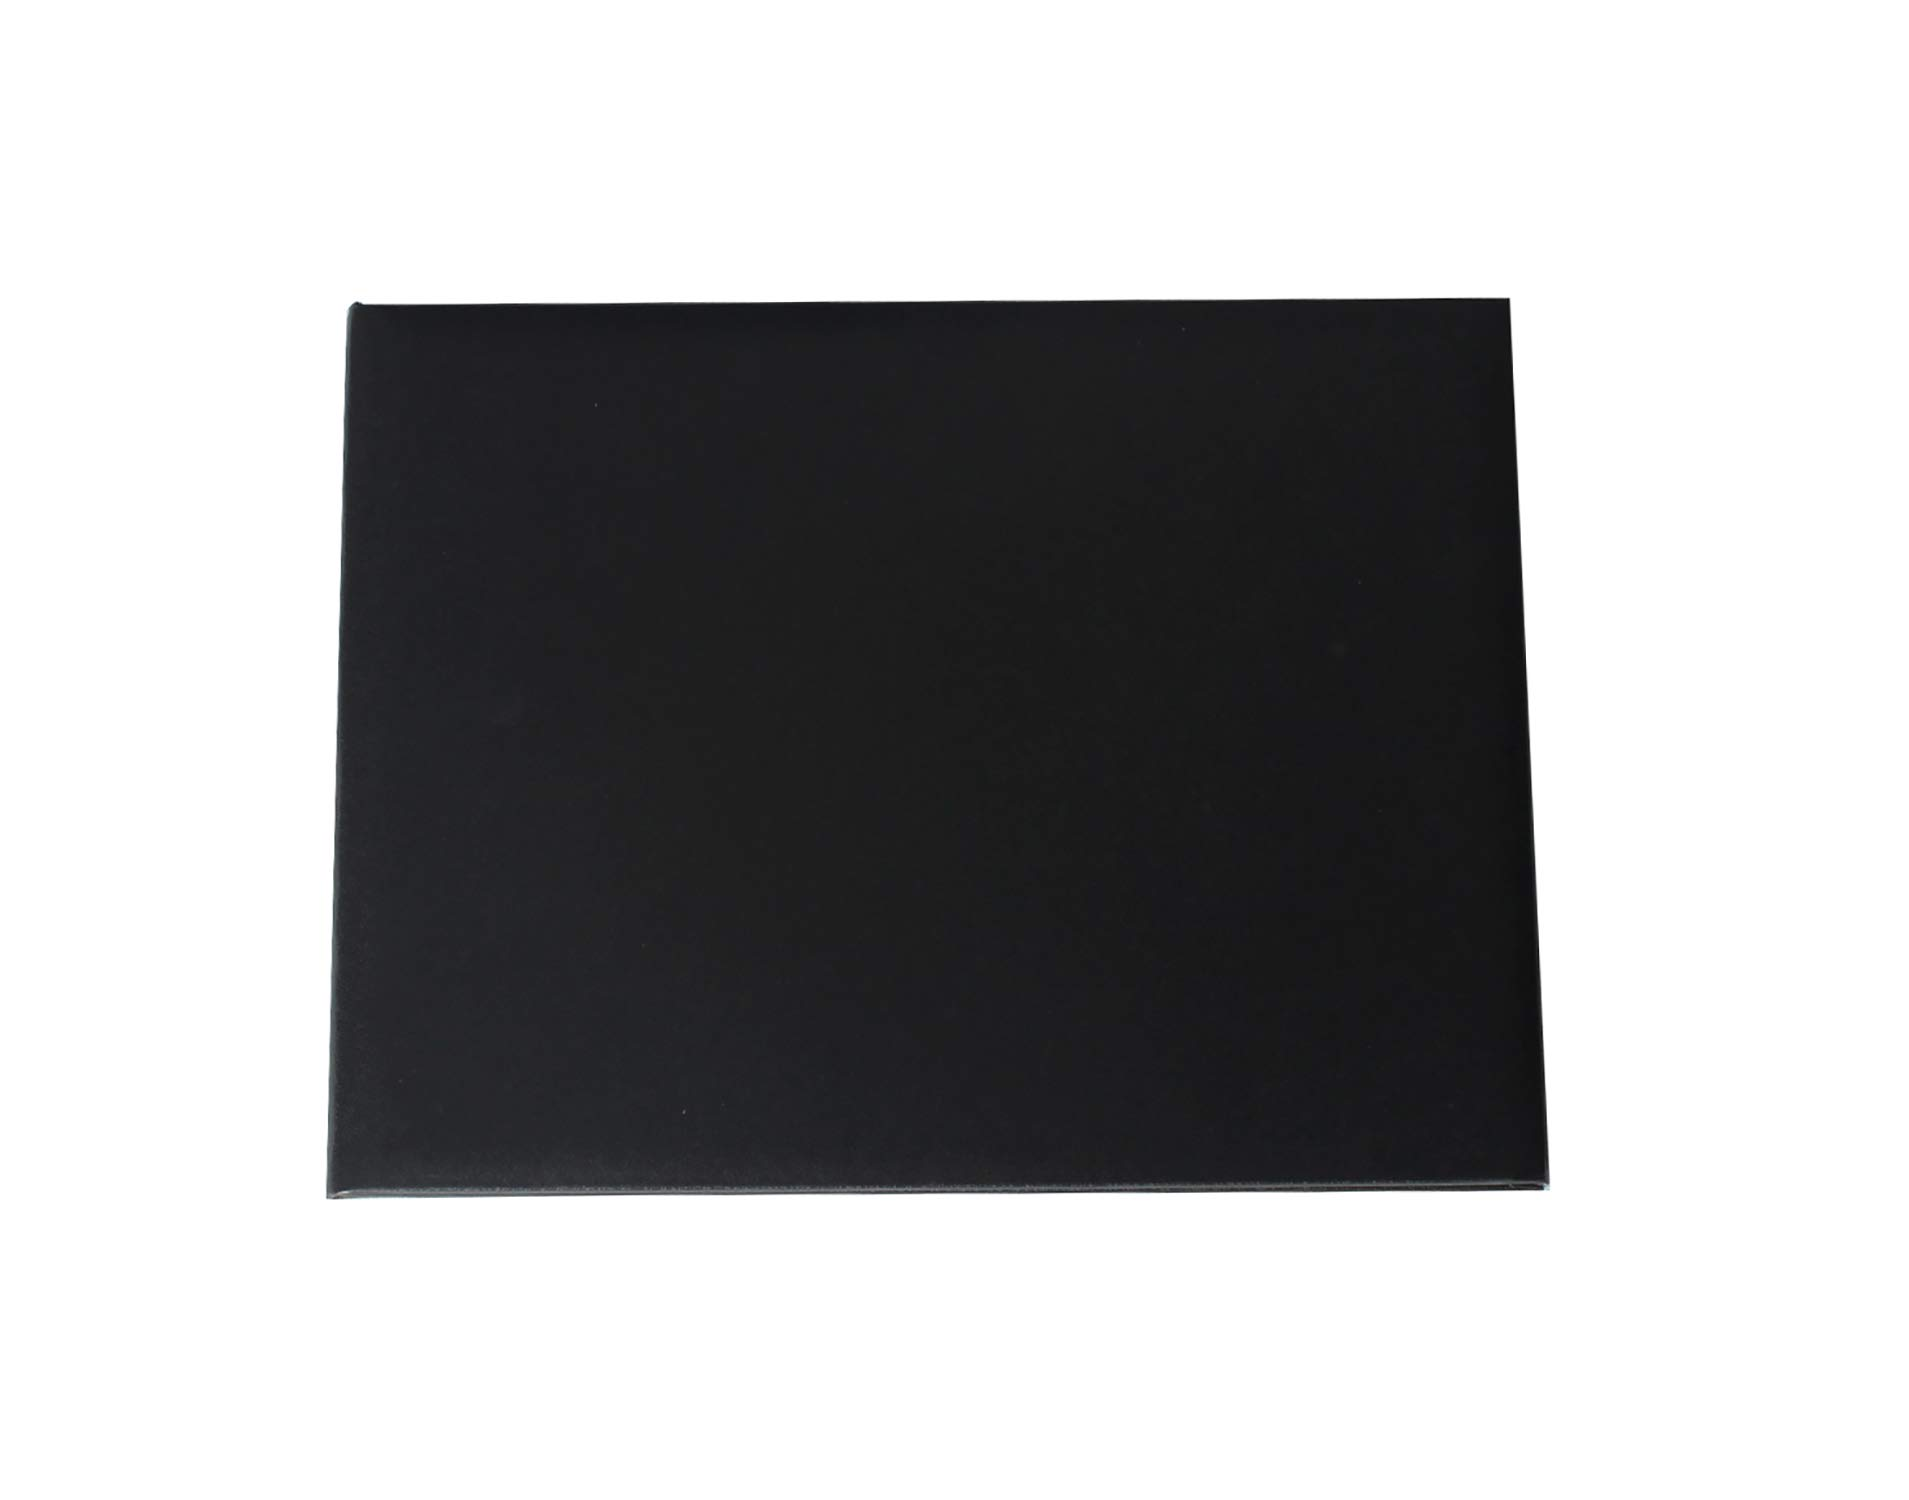 GraduationService Smooth Diploma Certificate Cover 8 1/2'' x 11'' (Black) by GraduationService (Image #2)